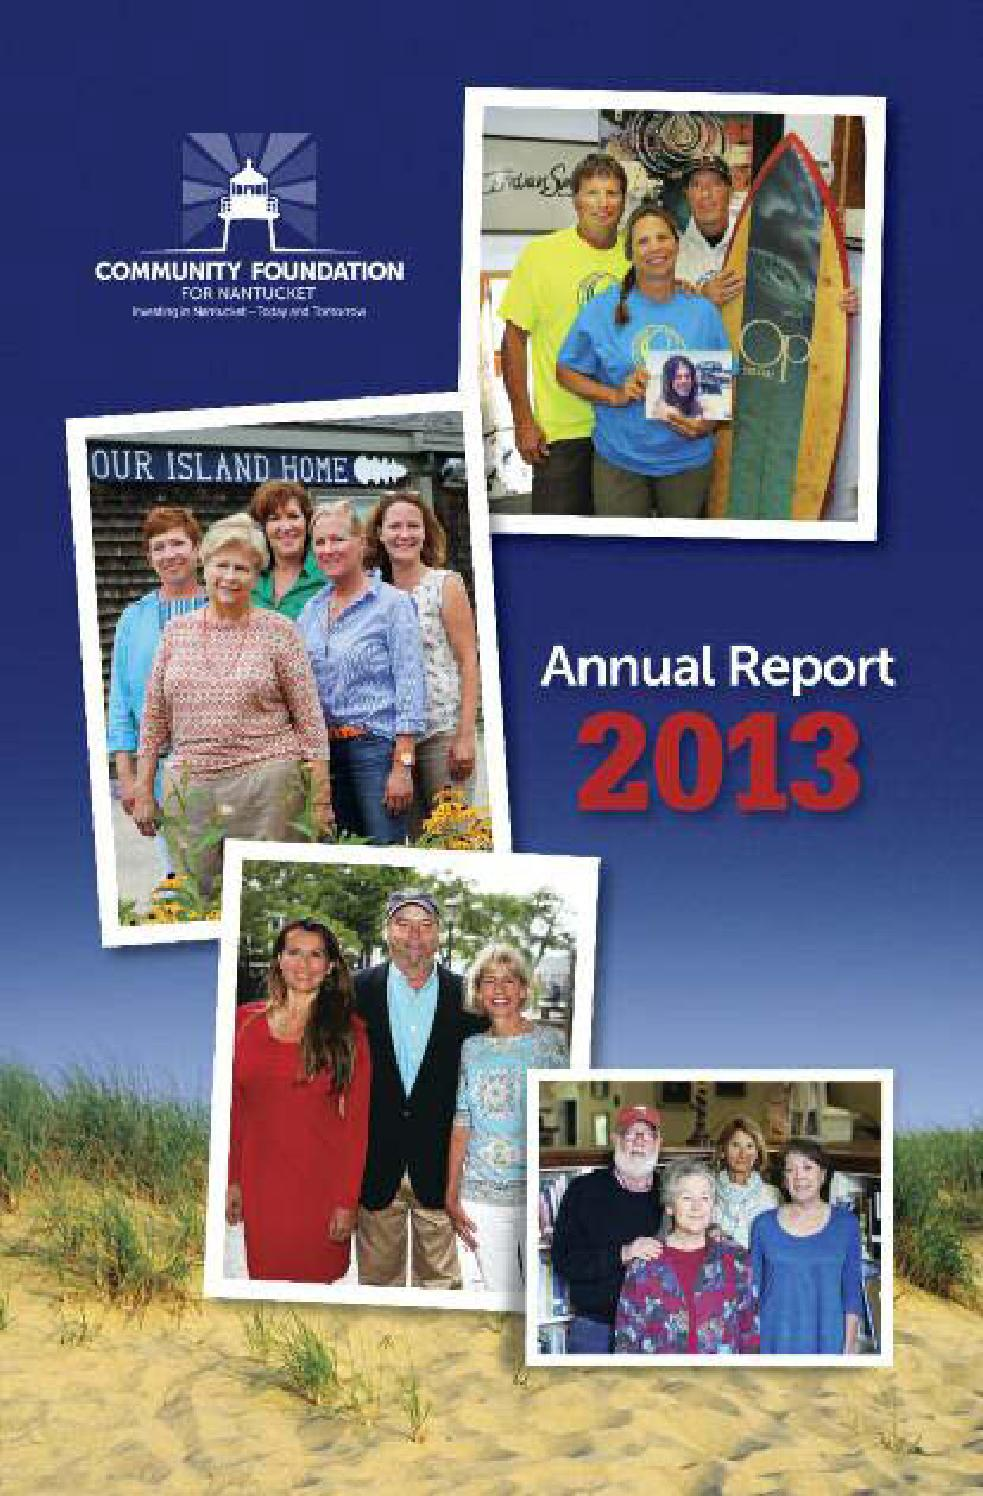 community foundation for nantucket 2013 annual report by novation